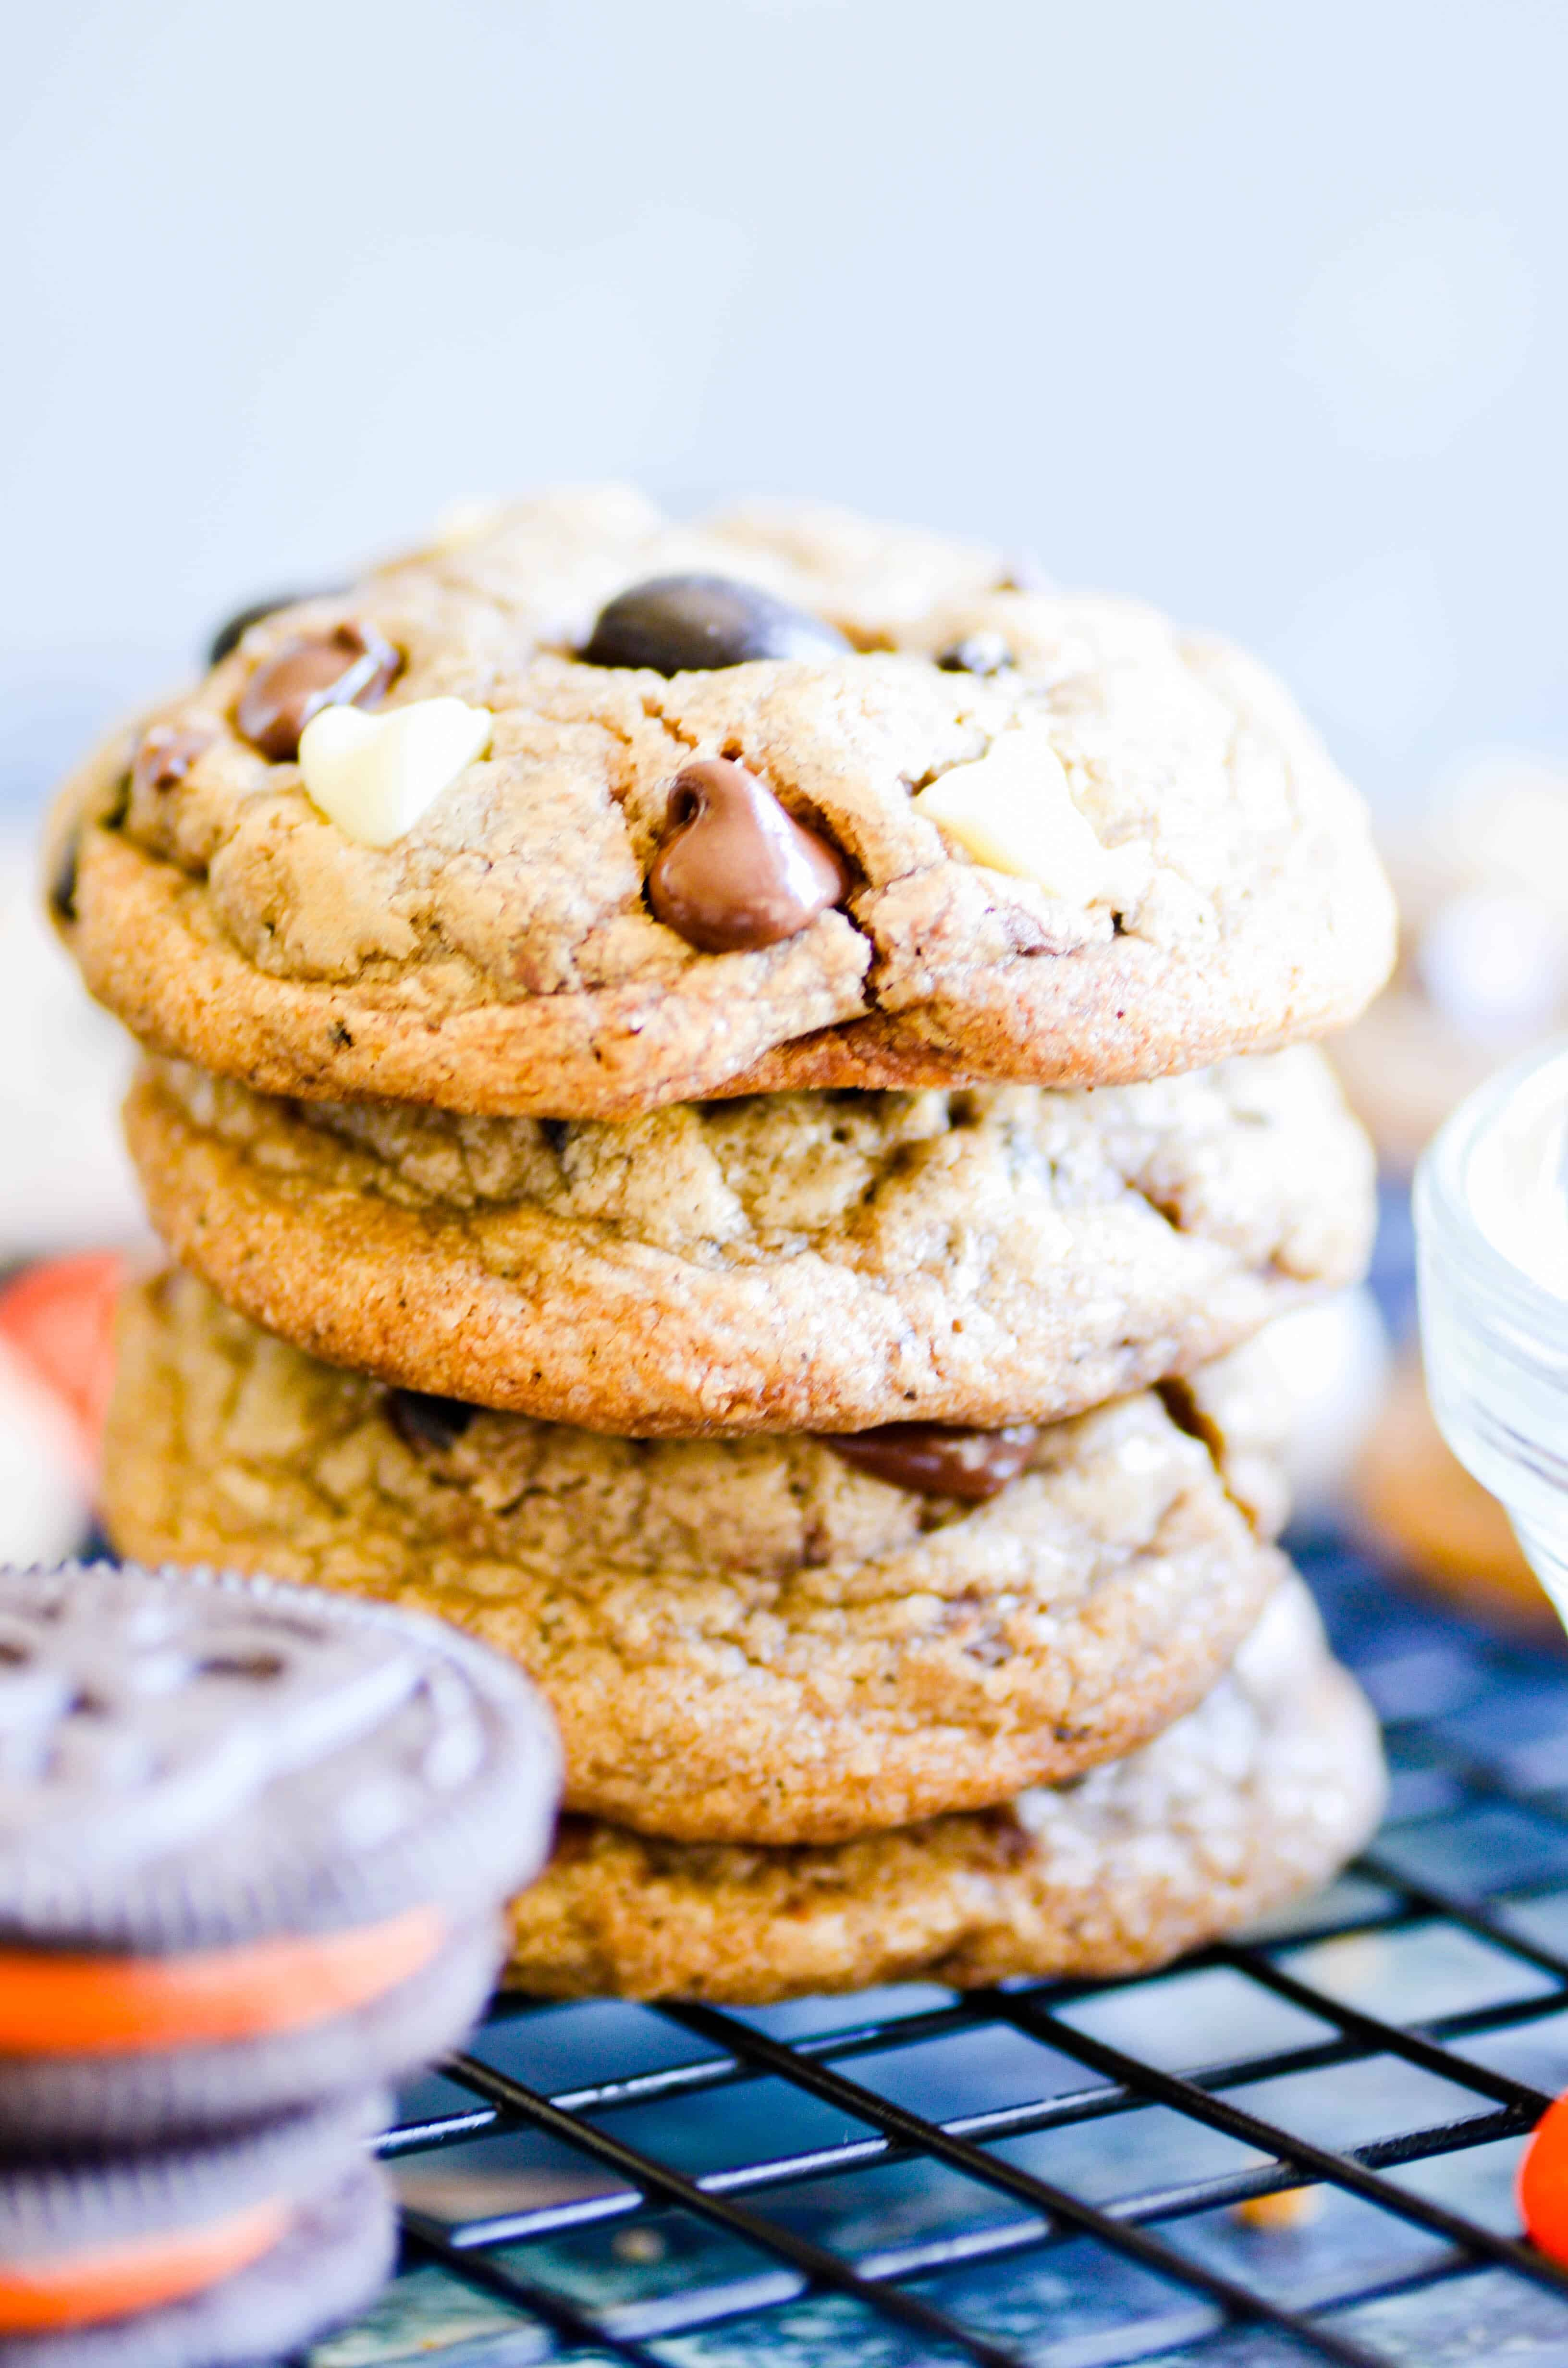 These Cookies & SCREEM M&M Chocolate Chip Cookies are a fun twist on a classic chocolate chip cookie.